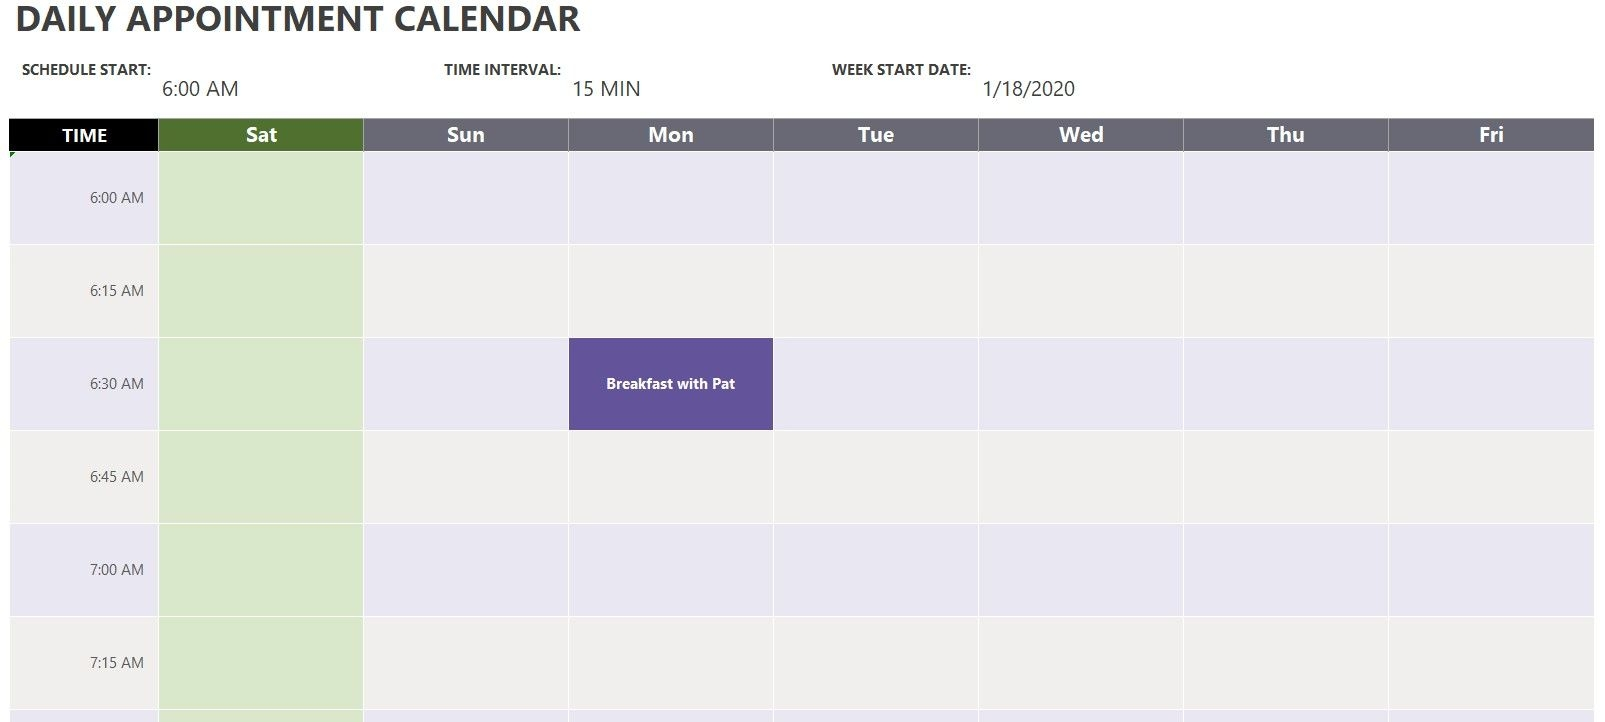 Daily Appointment Calendar Template | Exceltemplate